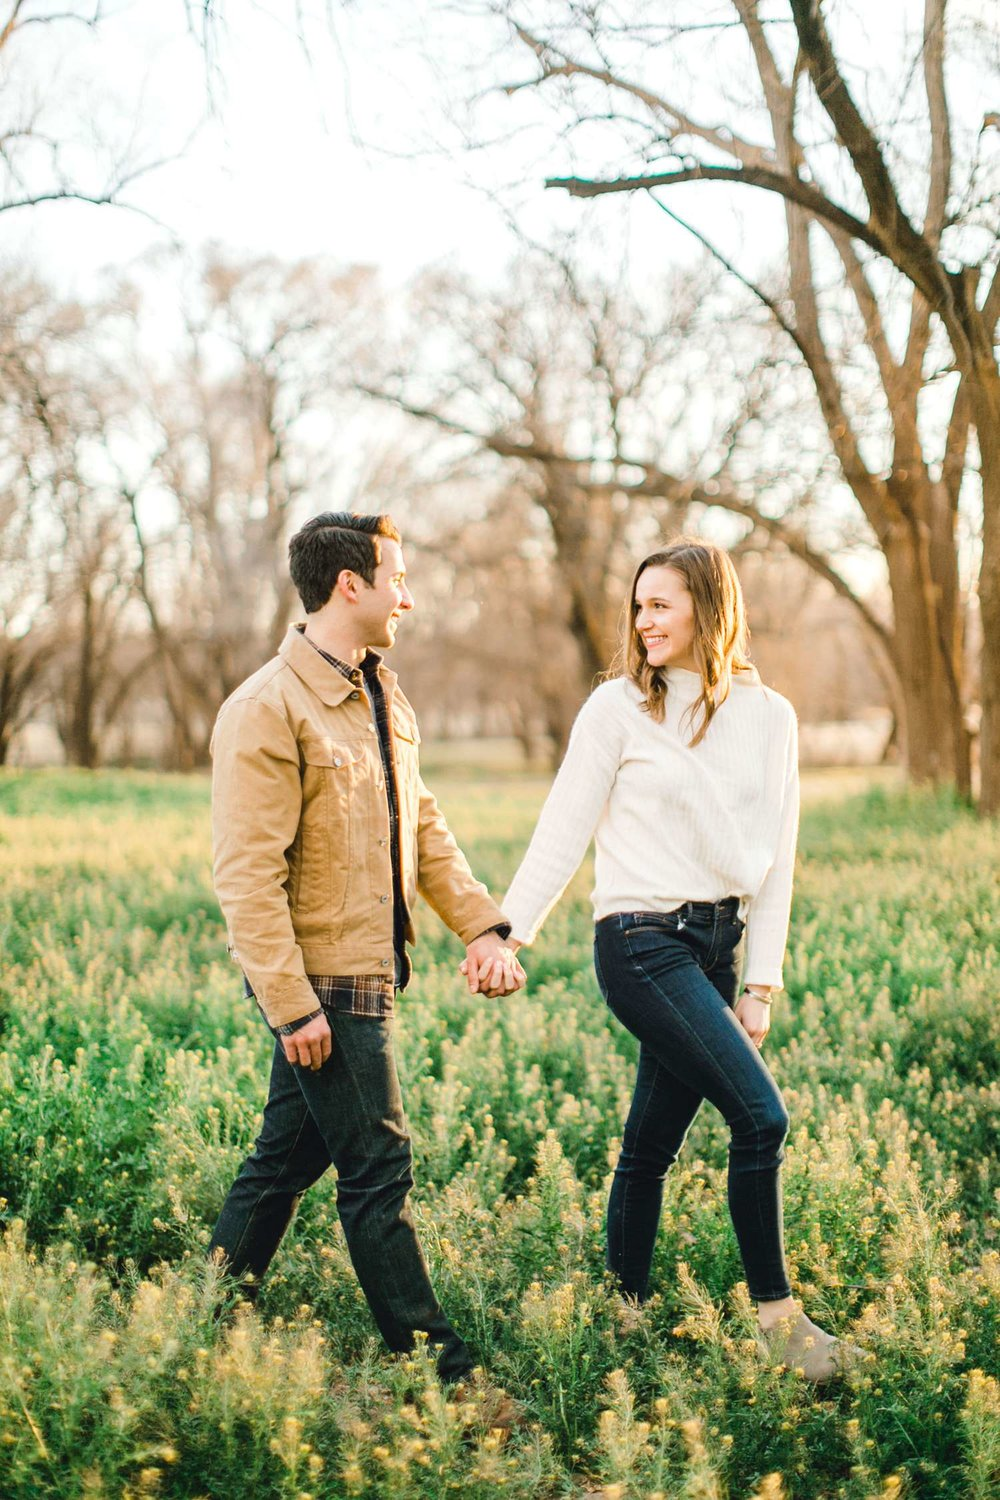 CAROLINE+CHRISTIAN+ALLEEJ+ENGAGEMENTS+LUBBOCK+WEDDING+PHOTOGRAPHER+FIRST+BAPTIST+CHURCH_0046.jpg